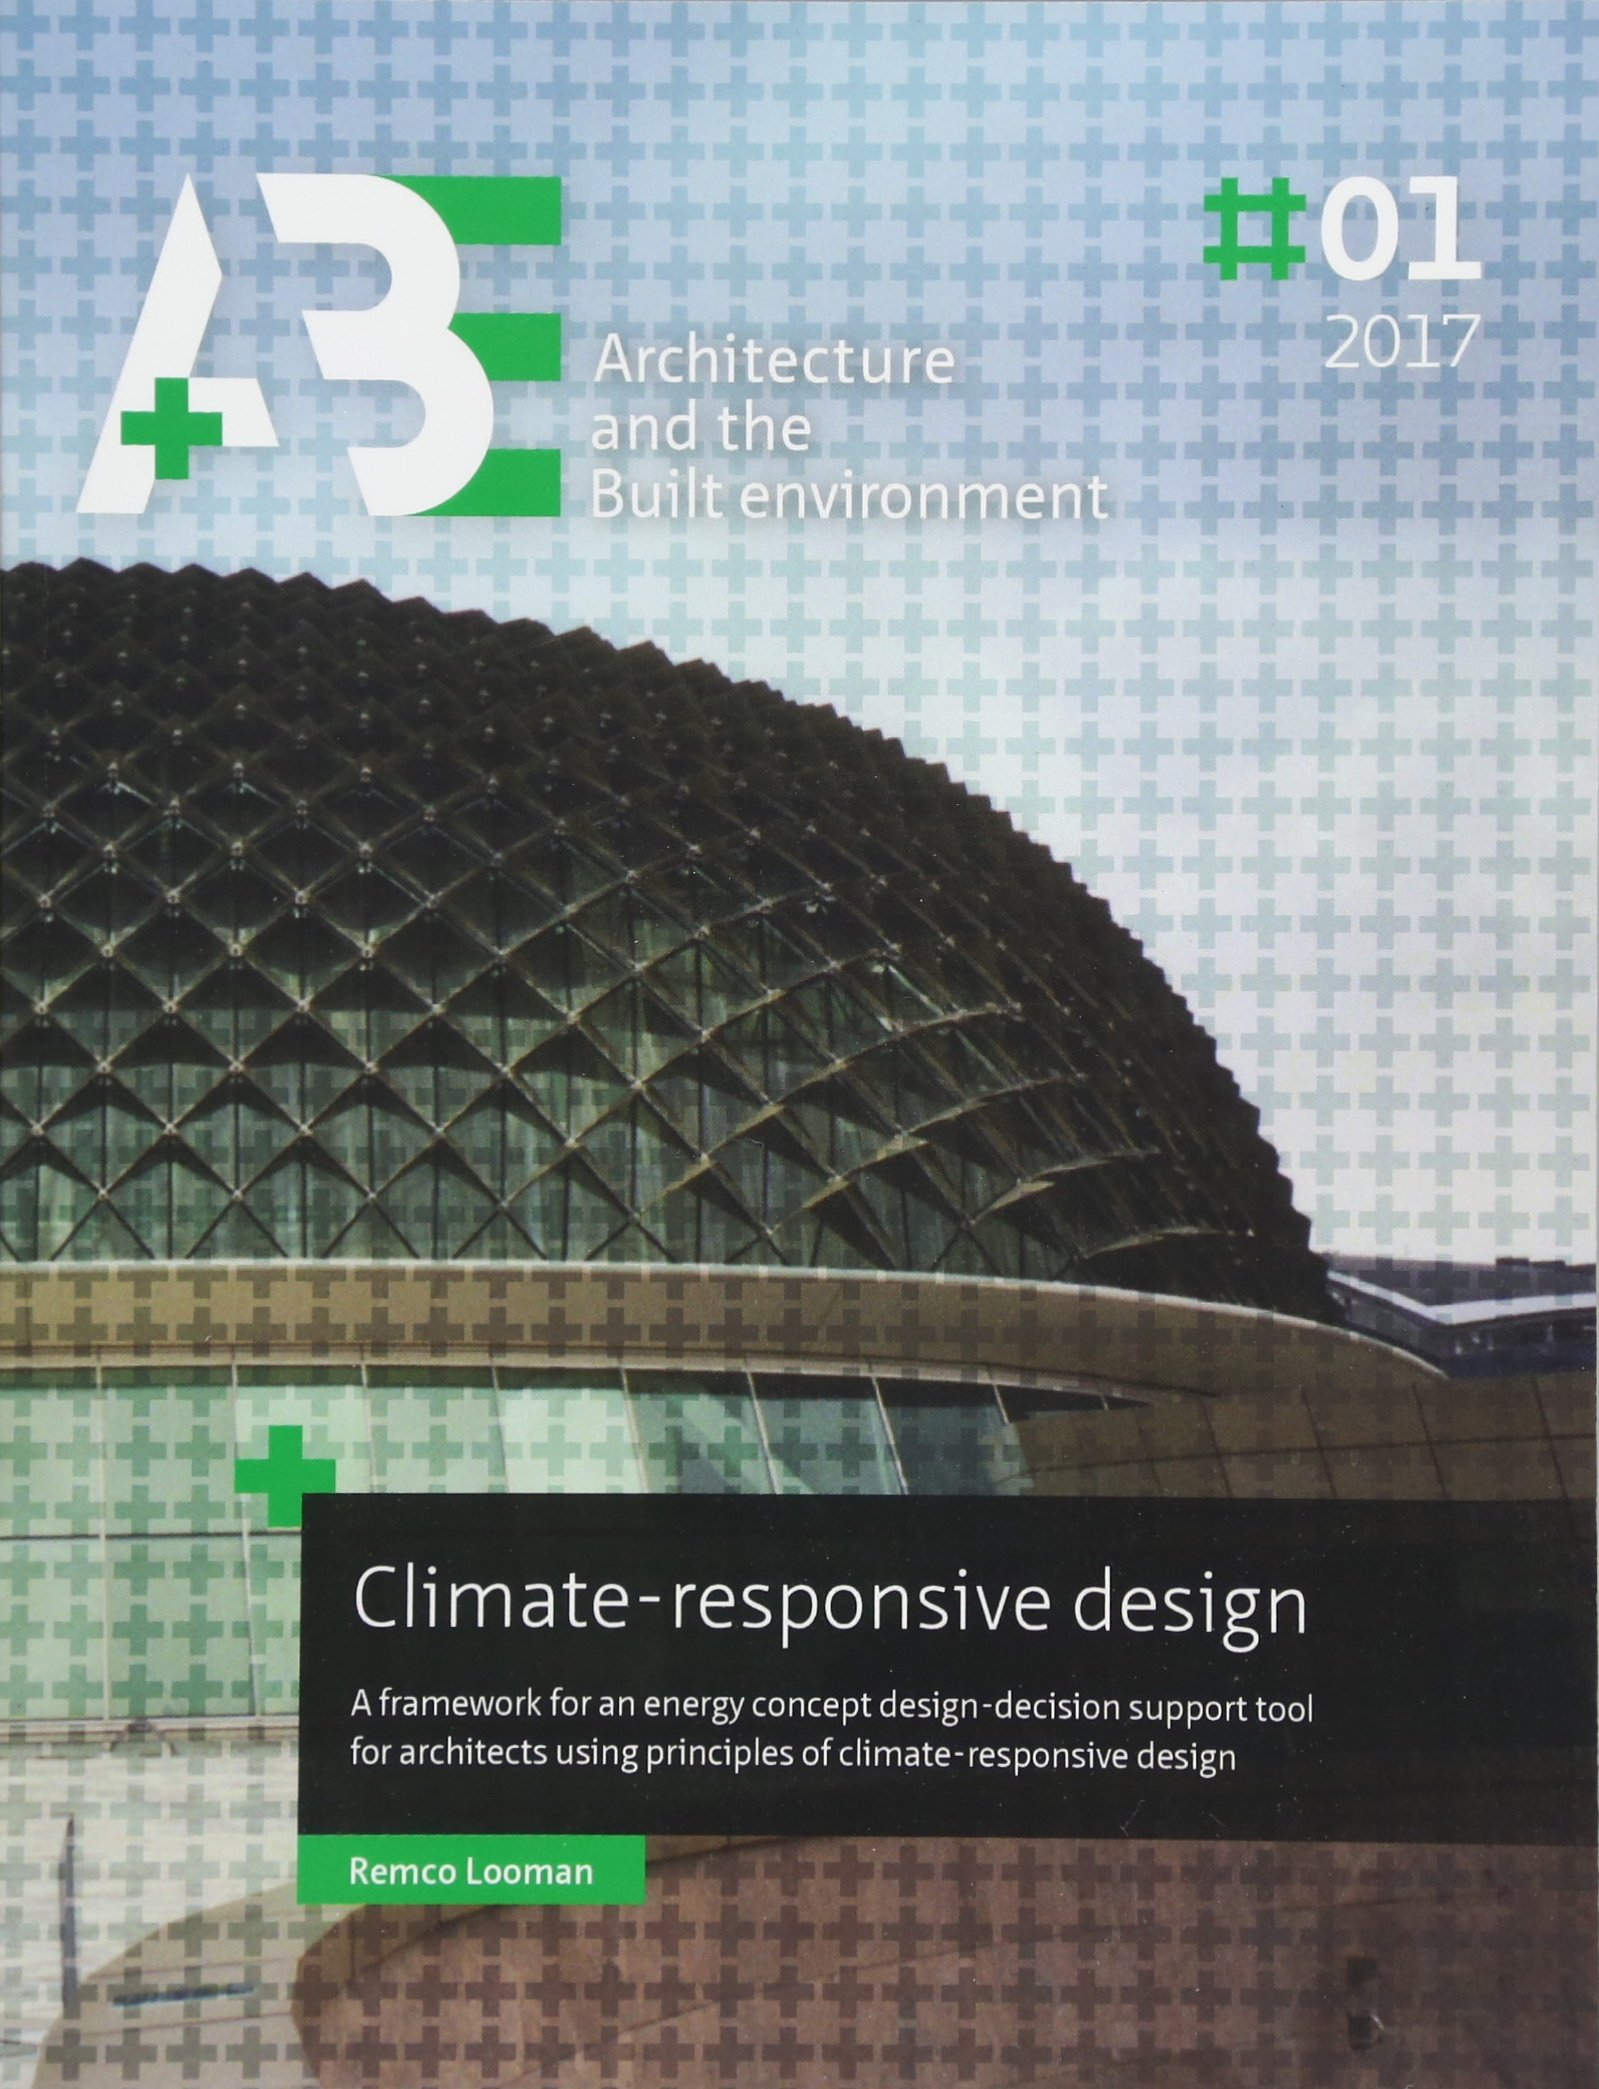 Climate-responsive design: A framework for an energy concept